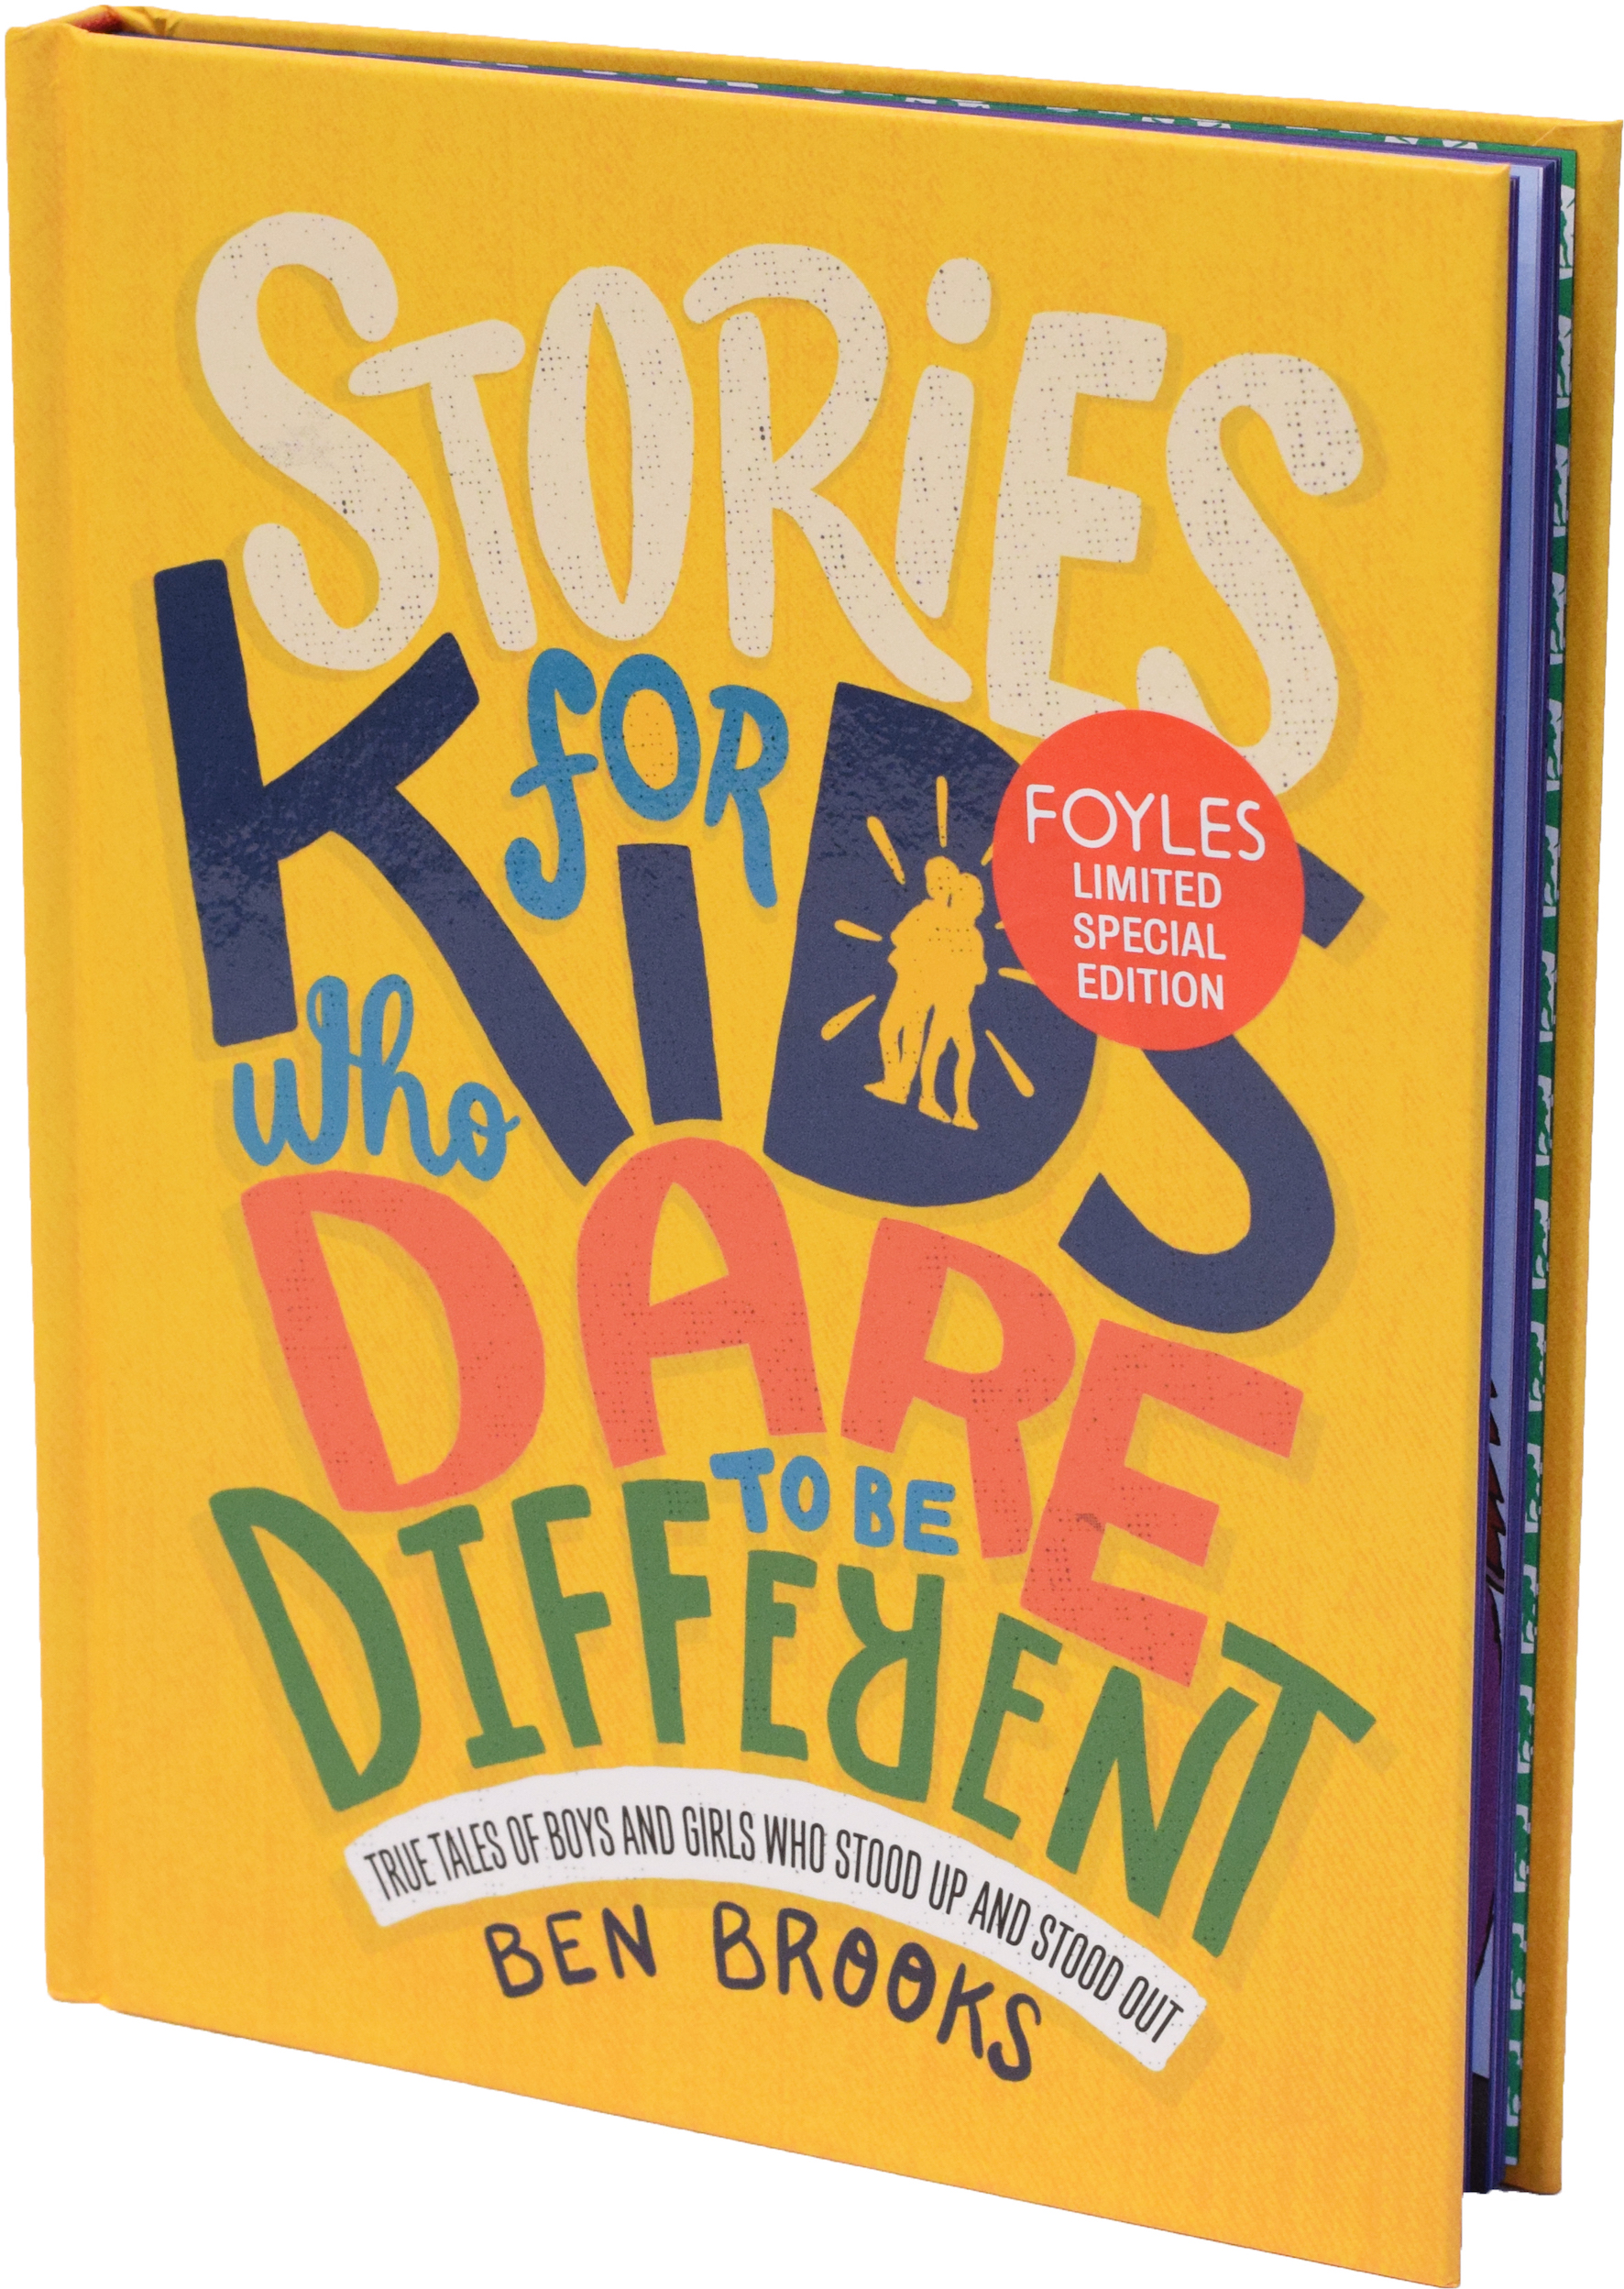 Foyles Signed Exclusive First Edition - Stories for Kids Who Dare to be Different